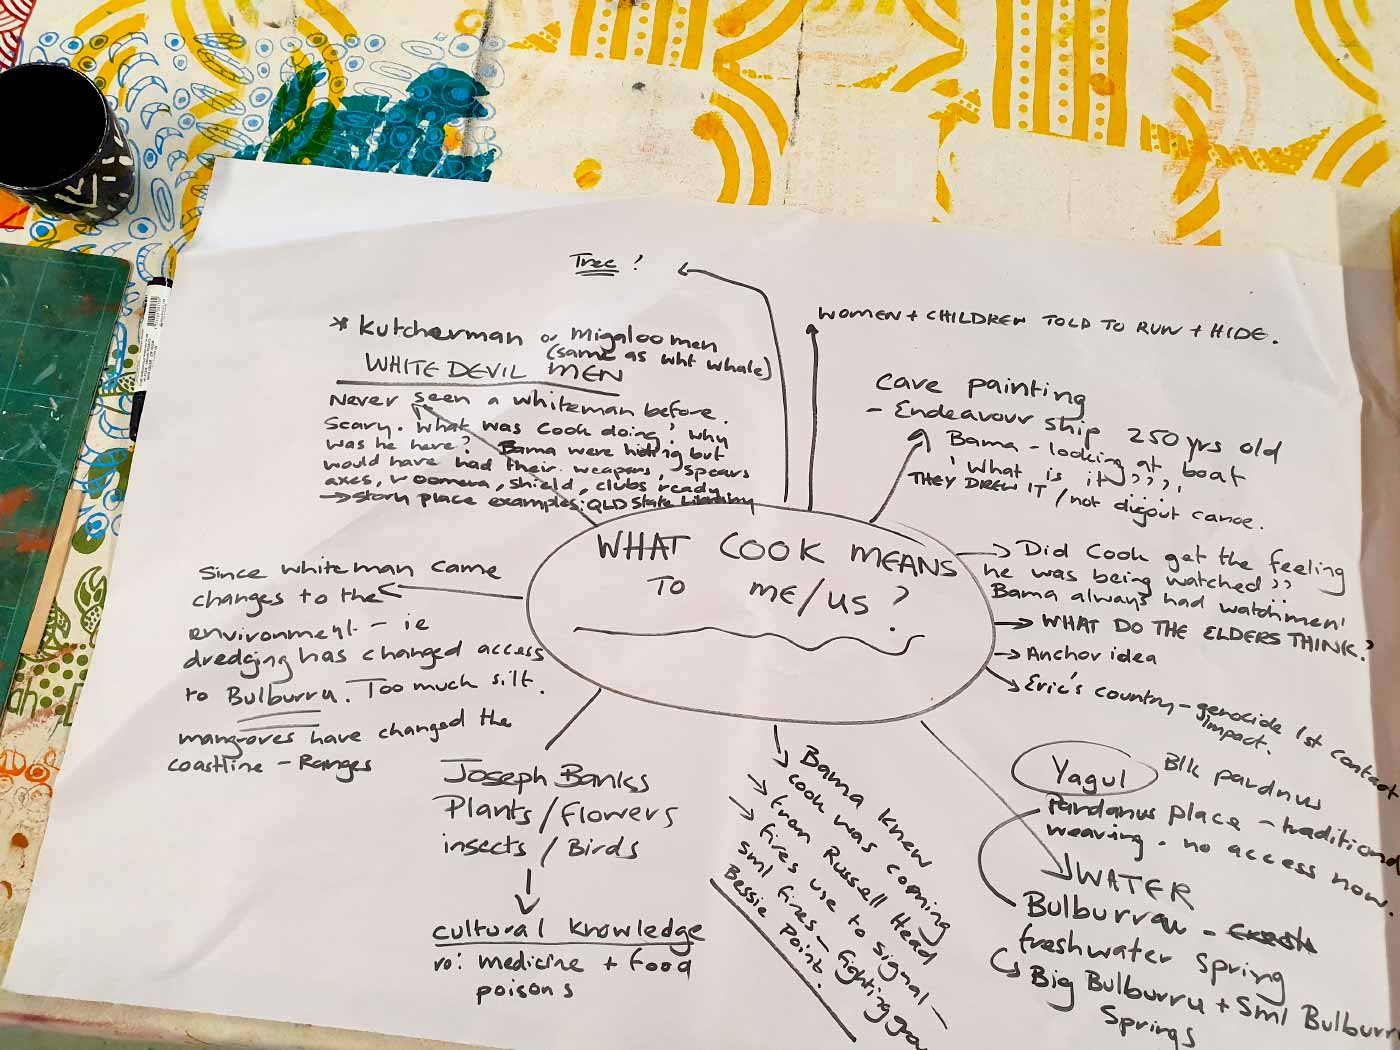 Brainstorming for a project featuring handwritten text in black marker pen. In the centre is the text 'WHAT COOK MEANS TO ME/US?' - click to view larger image